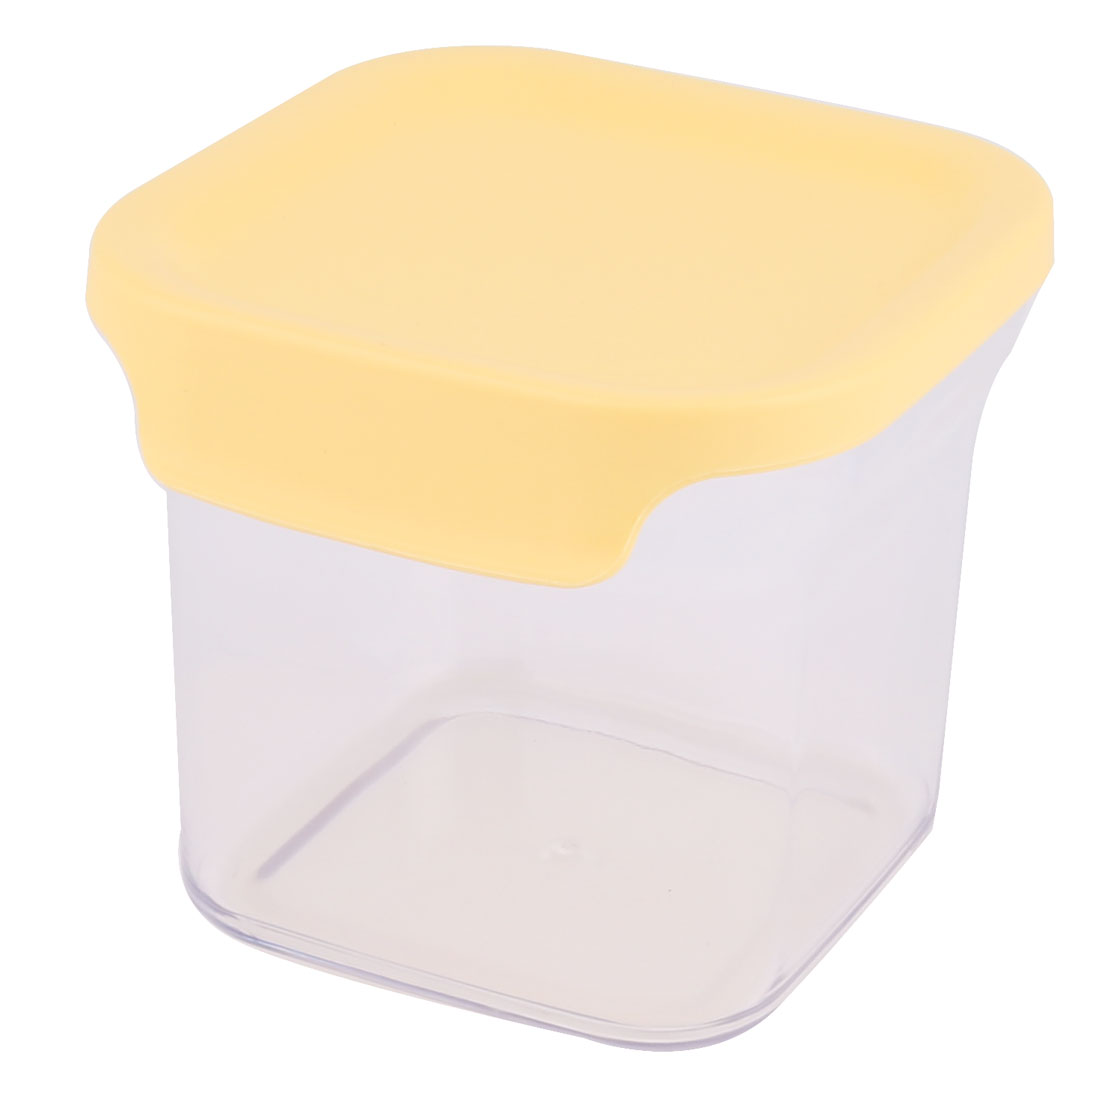 Kitchenware Square Plastic Airtight Food Cereals Bean Wheat Storage Box Organizer Yellow 650ML